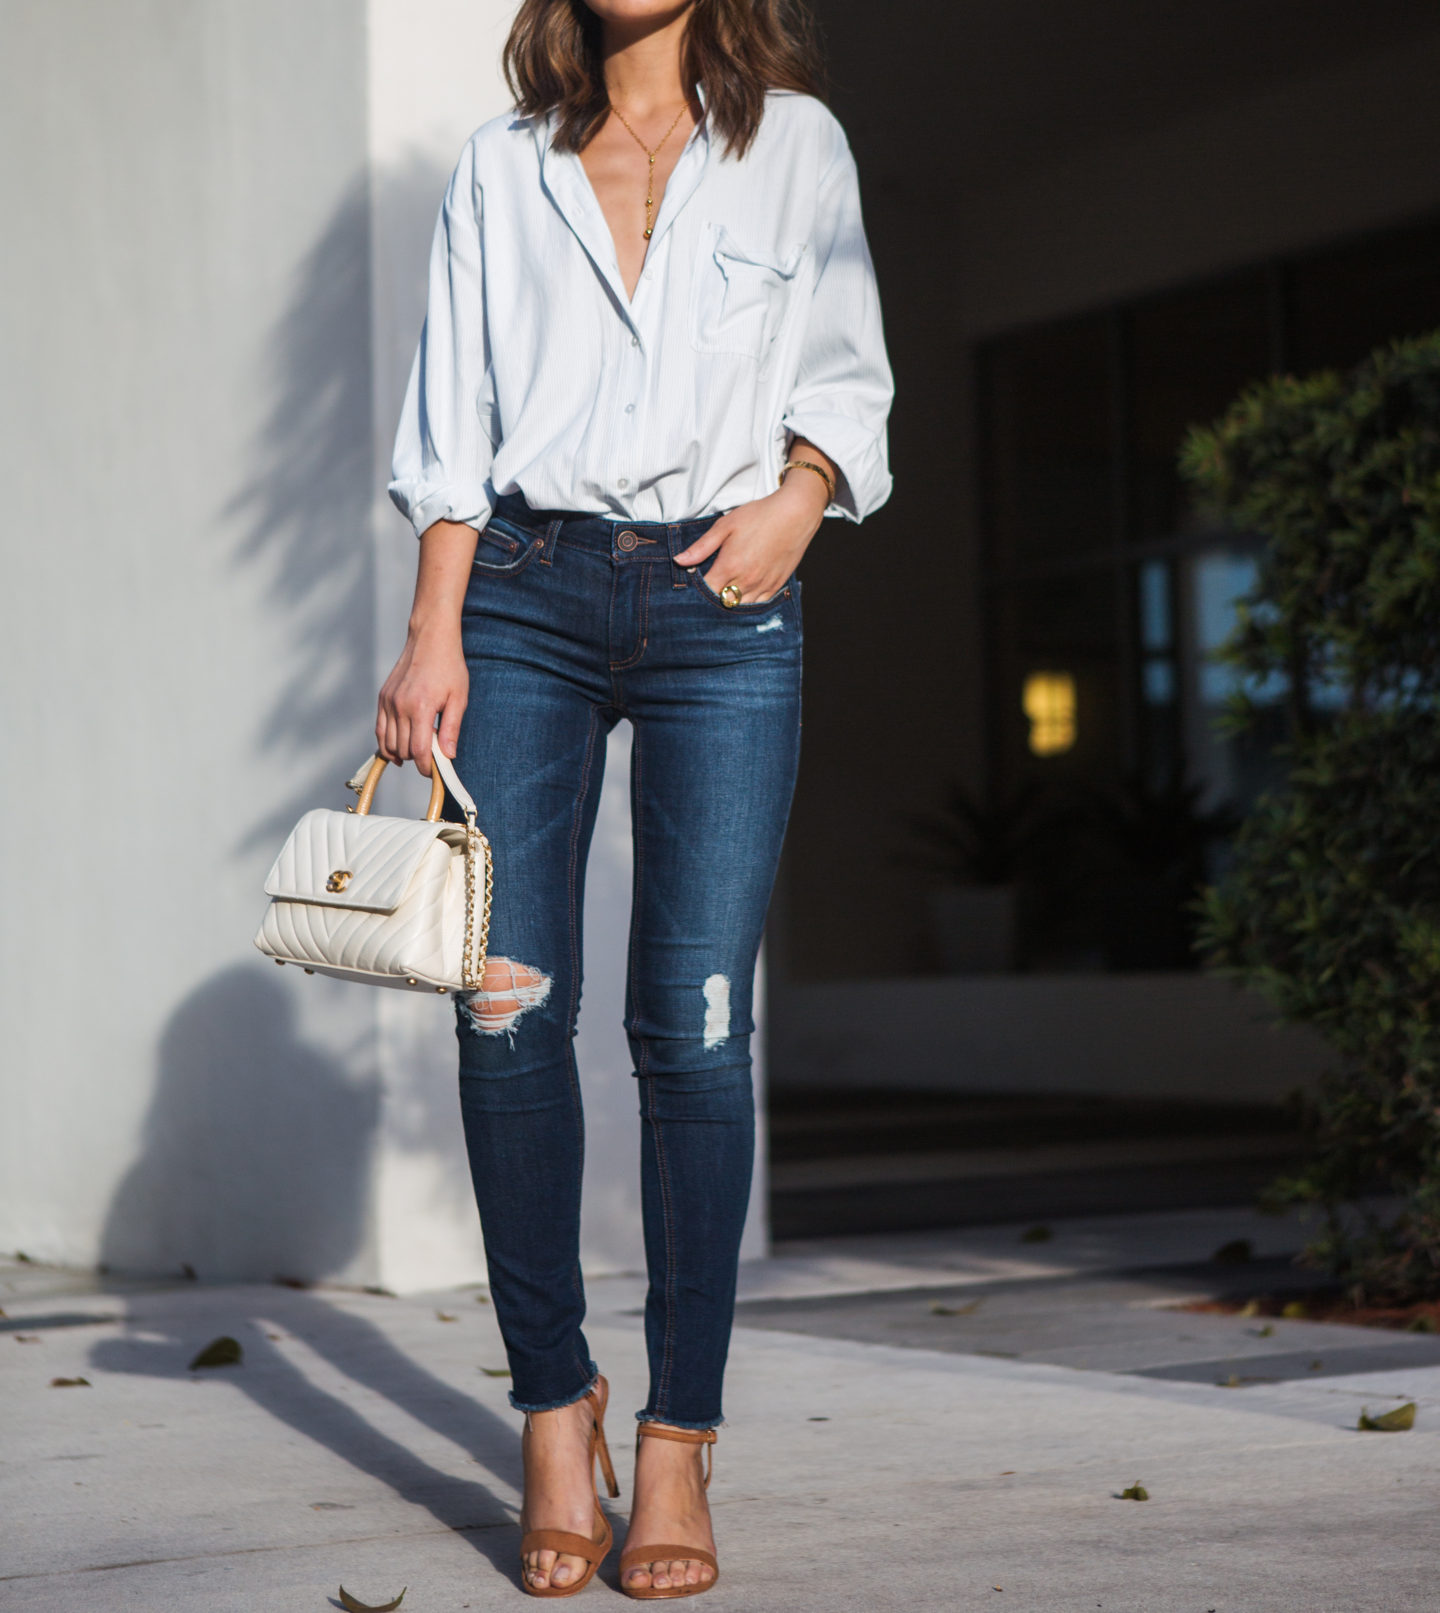 42d3f4746b3f1 ... I normally don t gravitate towards lighter washes but I am so in love  with this pair! I m wearing the Lauren Conrad Feel Good Midrise Skinny Jeans  ...